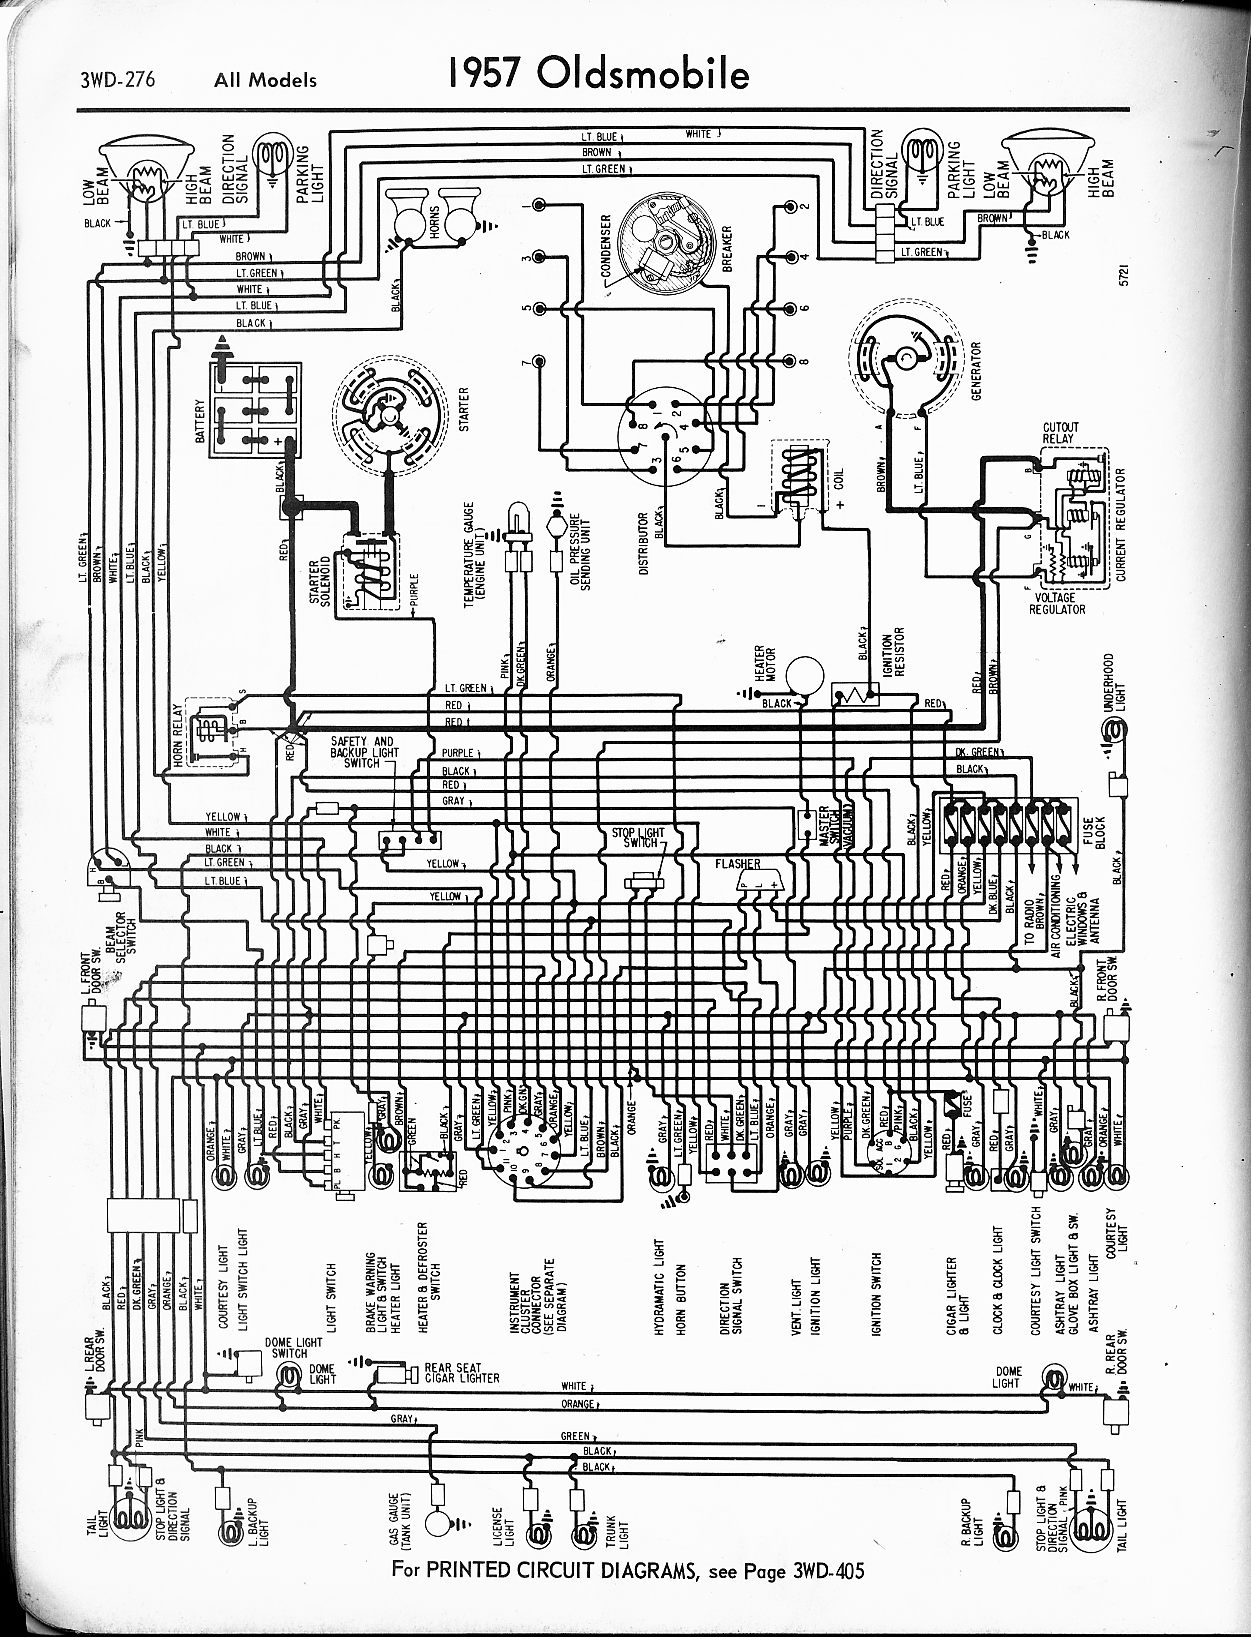 oldsmobile wiring diagrams the old car manual project 1971 chevelle wiring diagram pdf full color laminated wiring diagram